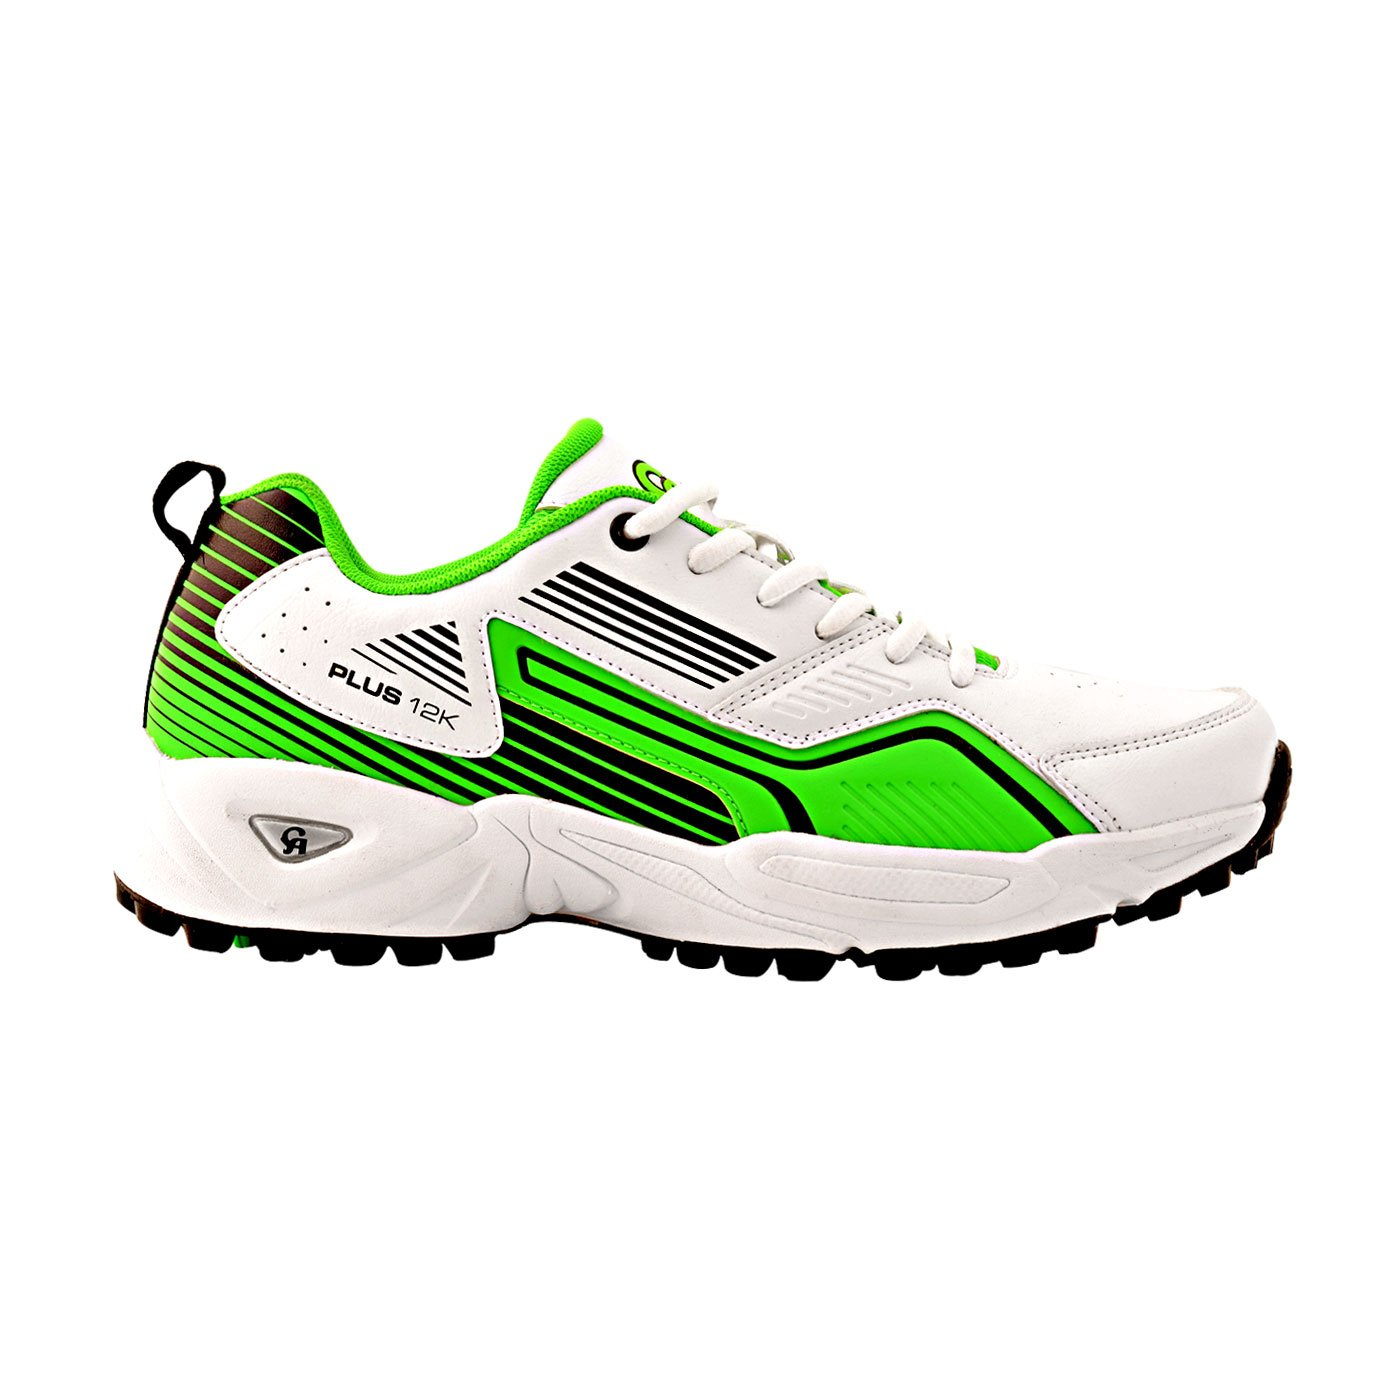 CA Plus 12K Cricket Shoes Made of hydrolyze high PU Available in various sizes and colors